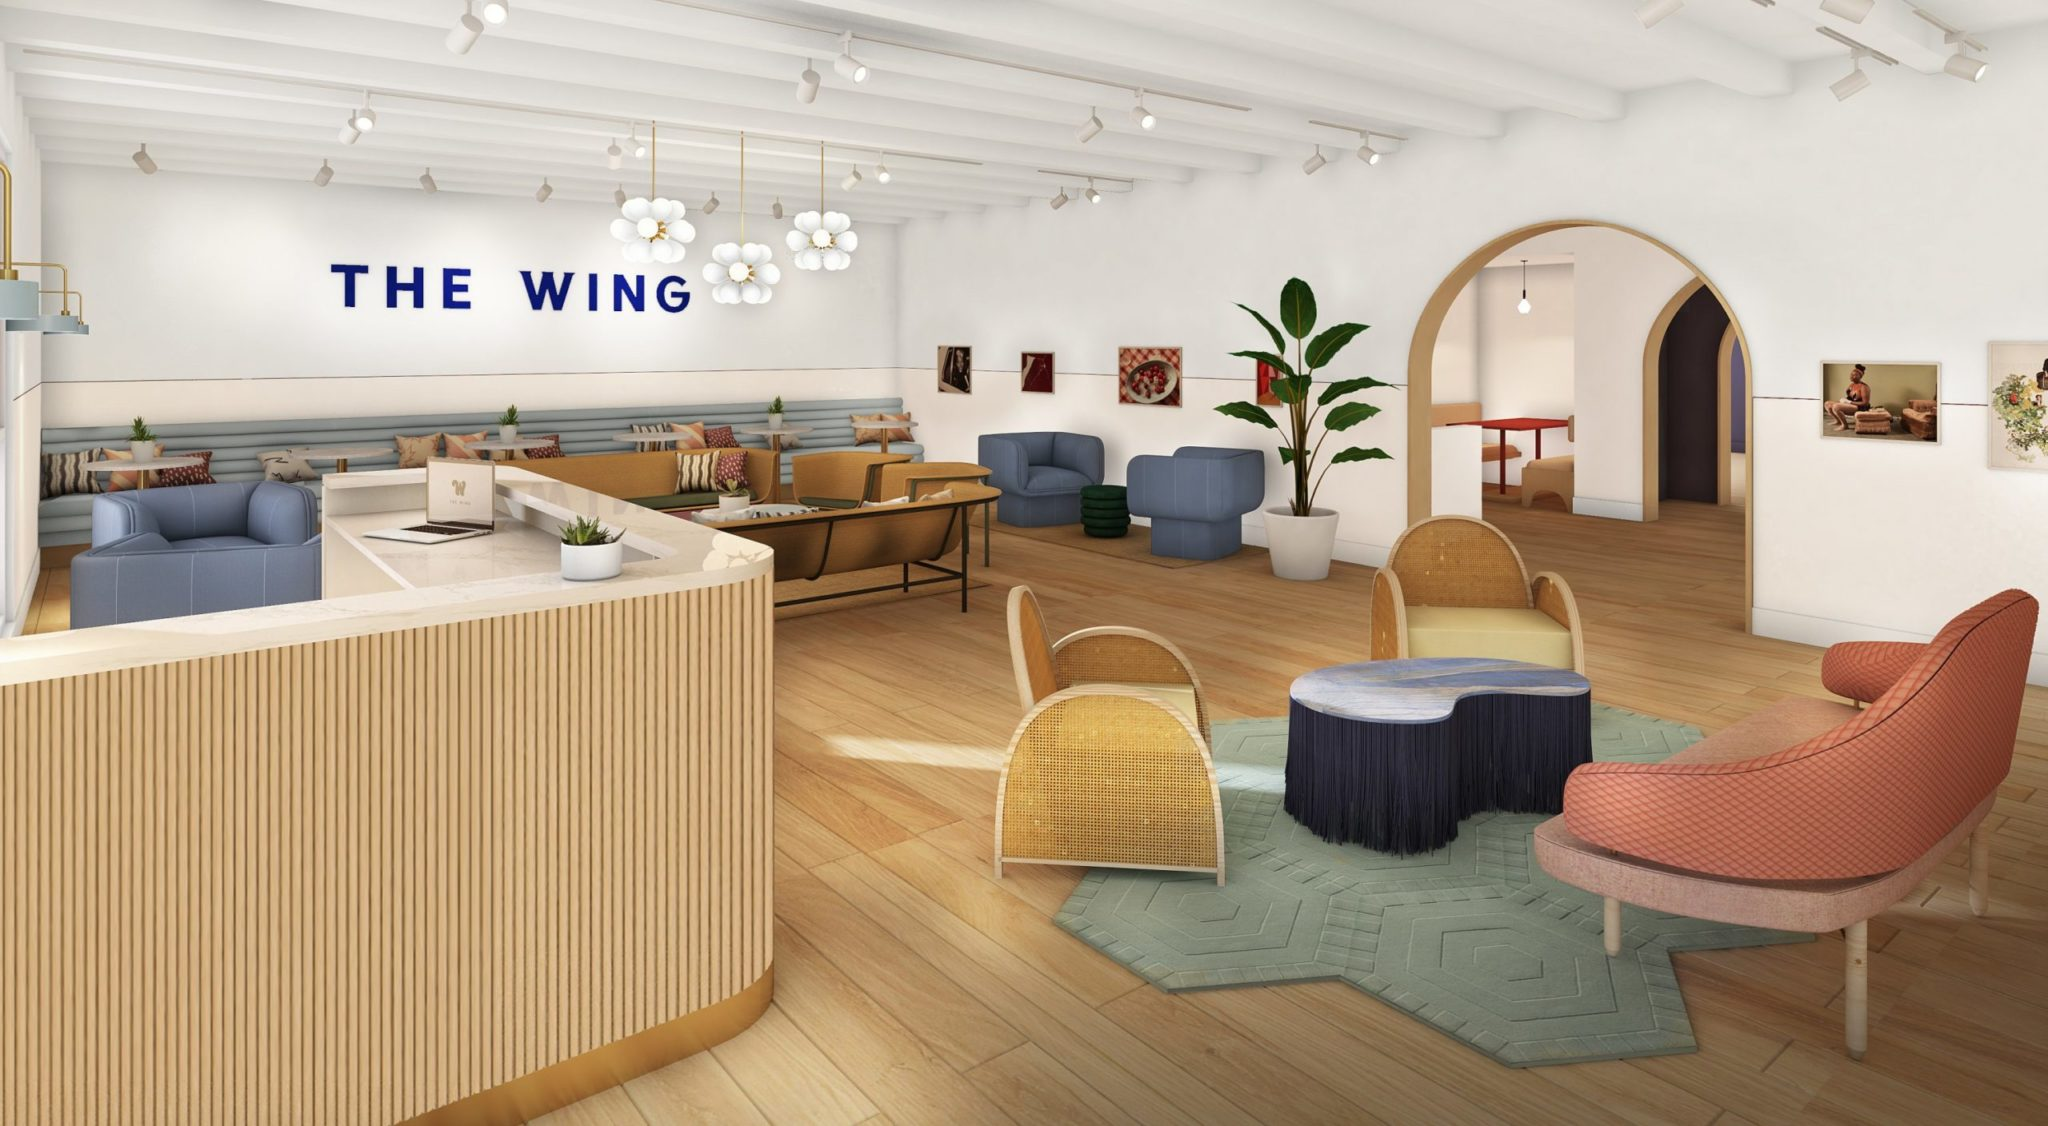 A First Look At the Wing, the Ultra-Chic Women's Coworking Space and Social Club Coming to Georgetown